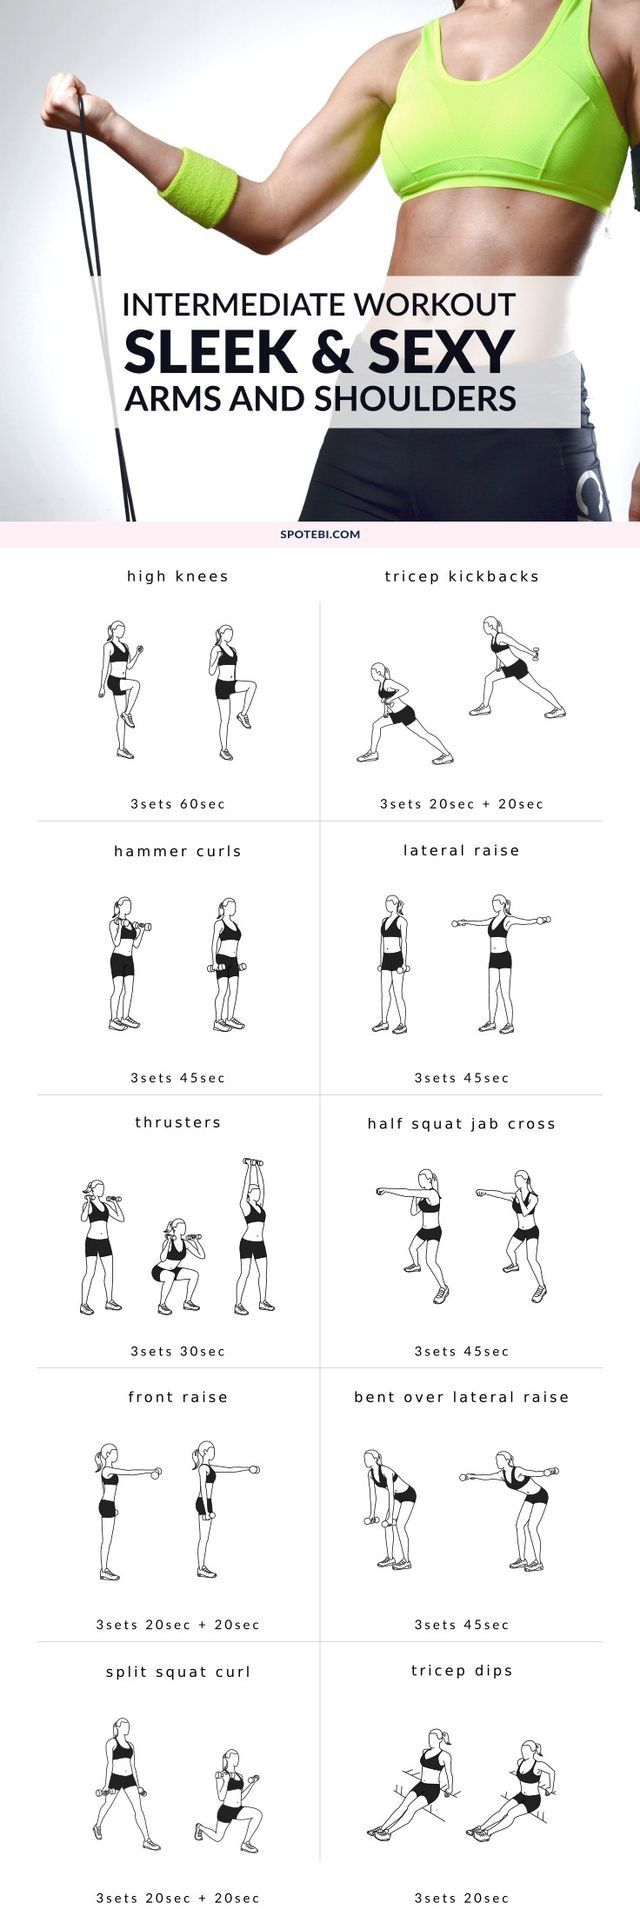 Get sleek arms and sexy shoulders with this dumbbell workout routine for women. A set of 10 upper body exercises perfect for strengthening the muscles and start sculpting your torso.